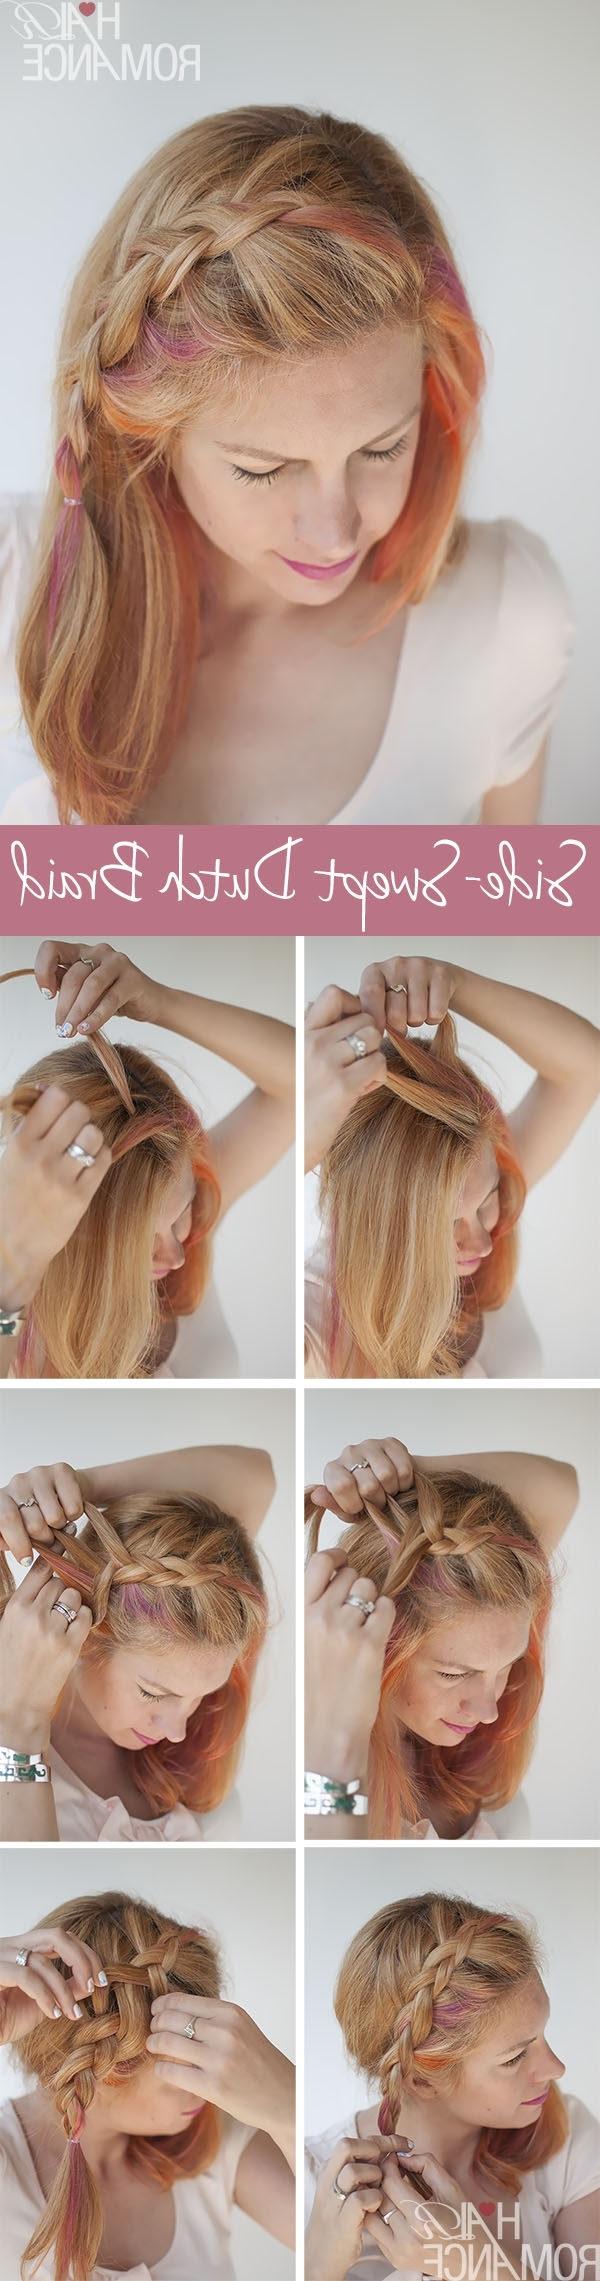 Most Up To Date Braid And Side Bang Hairstyles Intended For Side Swept Dutch Braid Hairstyle Tutorial – Hair Romance (View 9 of 15)